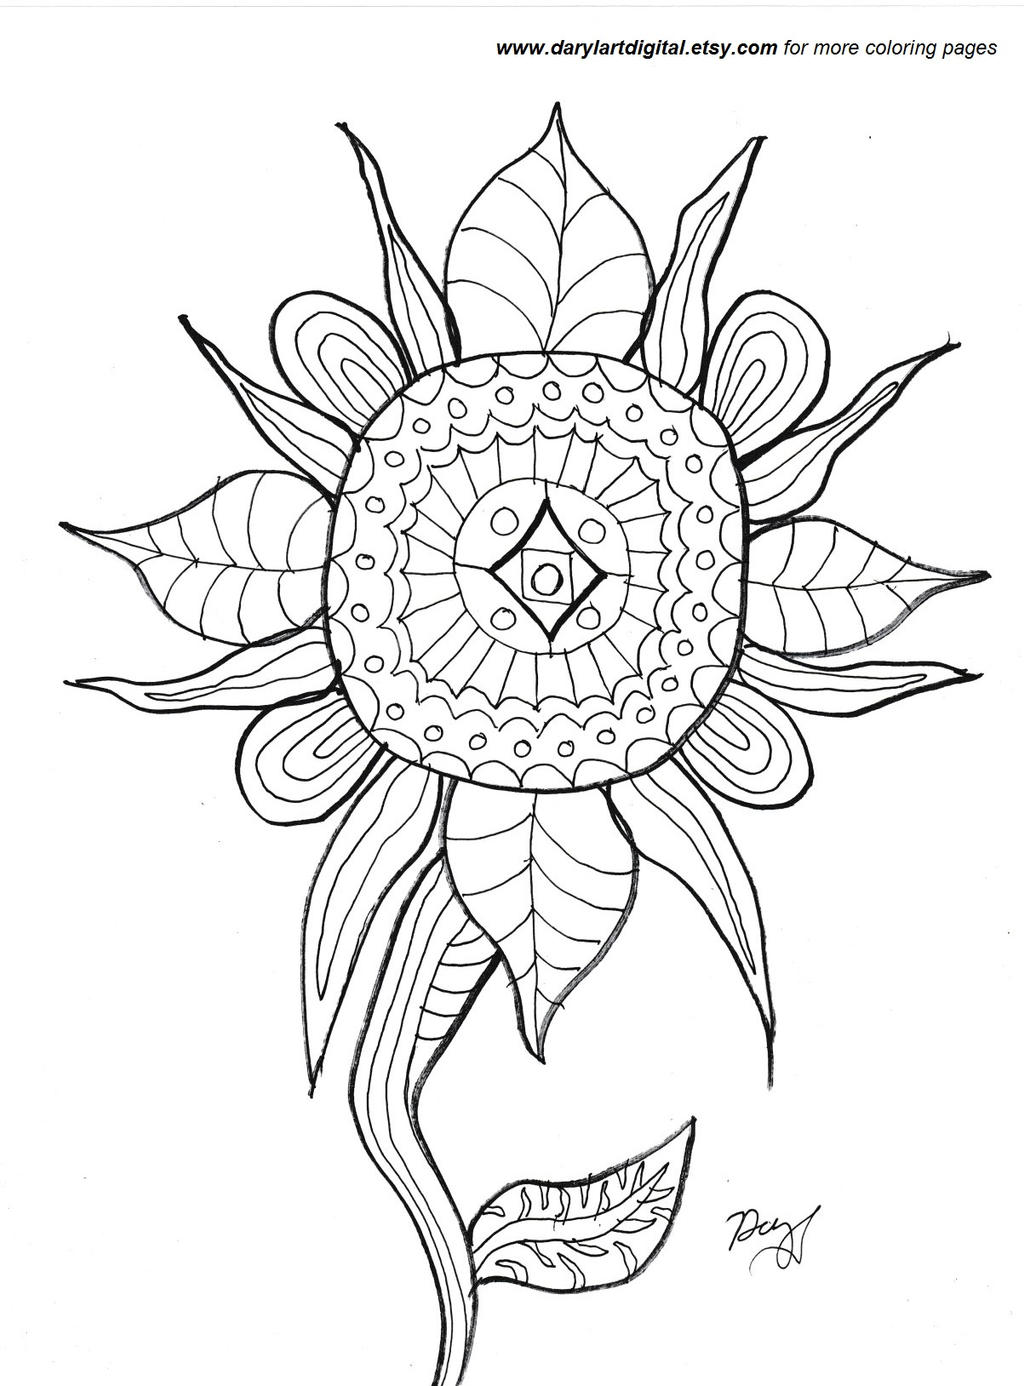 Abstract Flower Free Printable Coloring Sheet By Daryl The Cartoonist On Deviantart